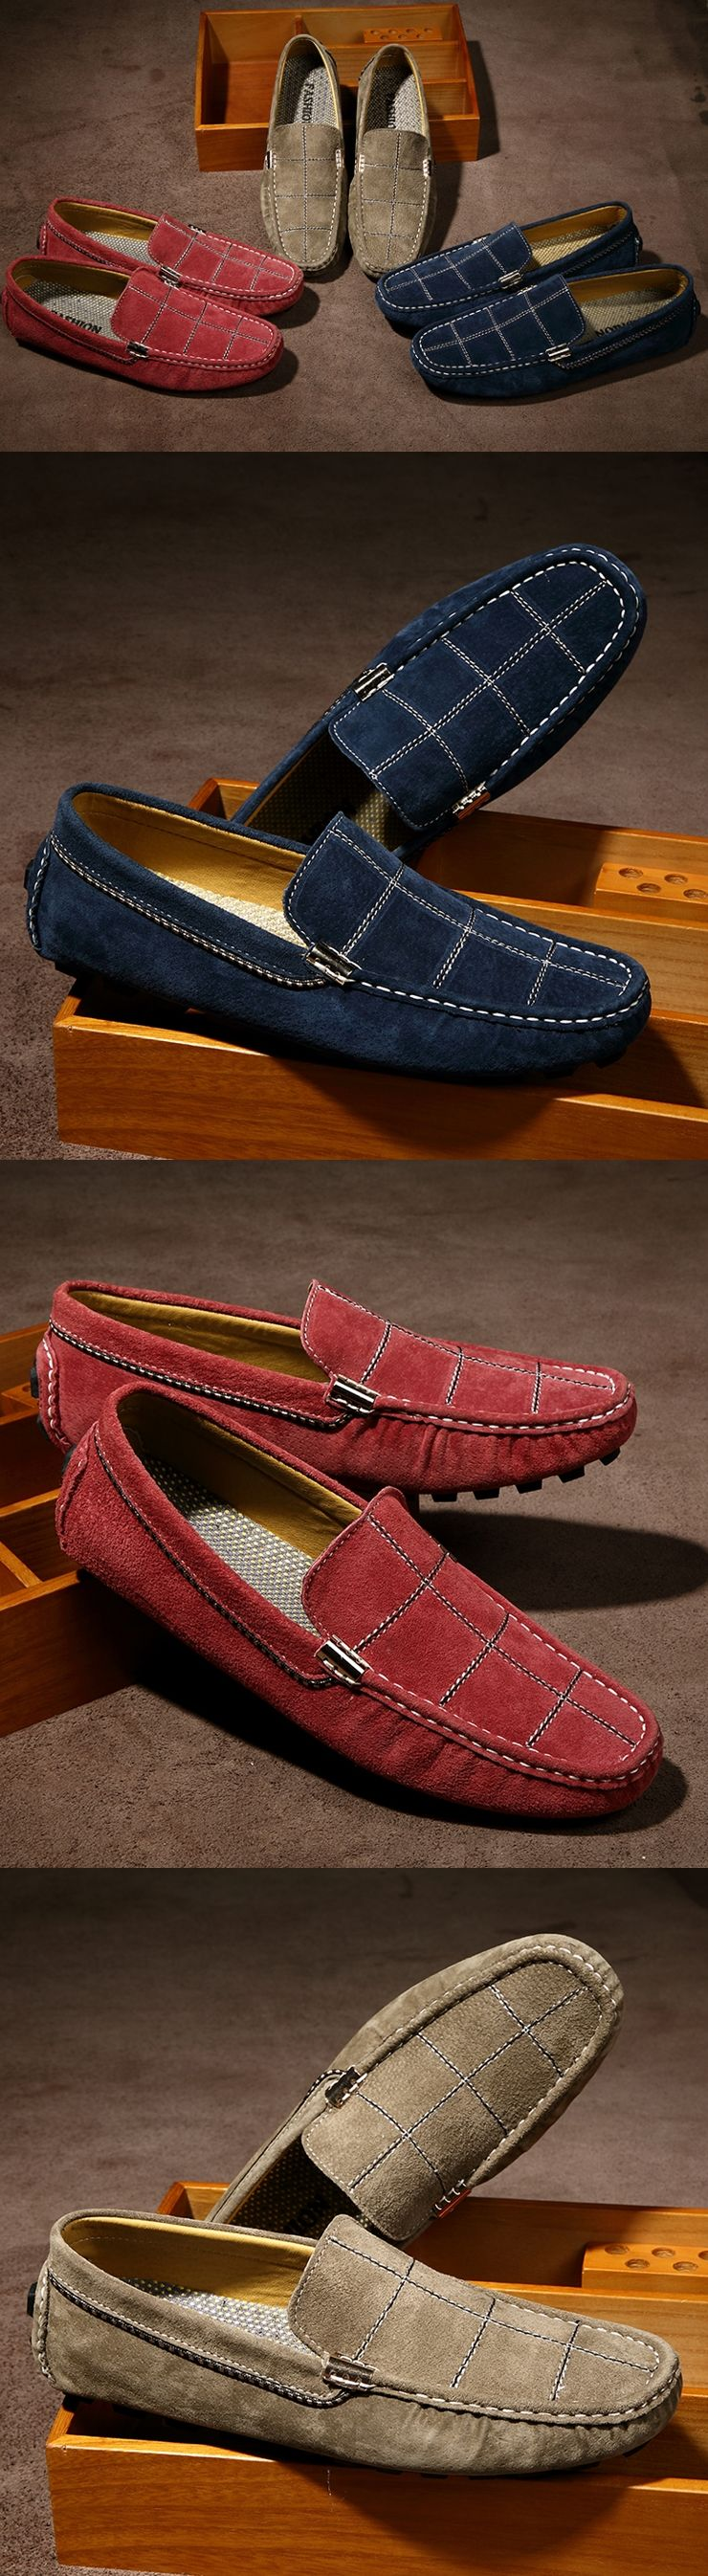 Men's Suede Leather Loafers Classic Slip Ons Buckle Casual Boat Shoes (6.5 US Red)